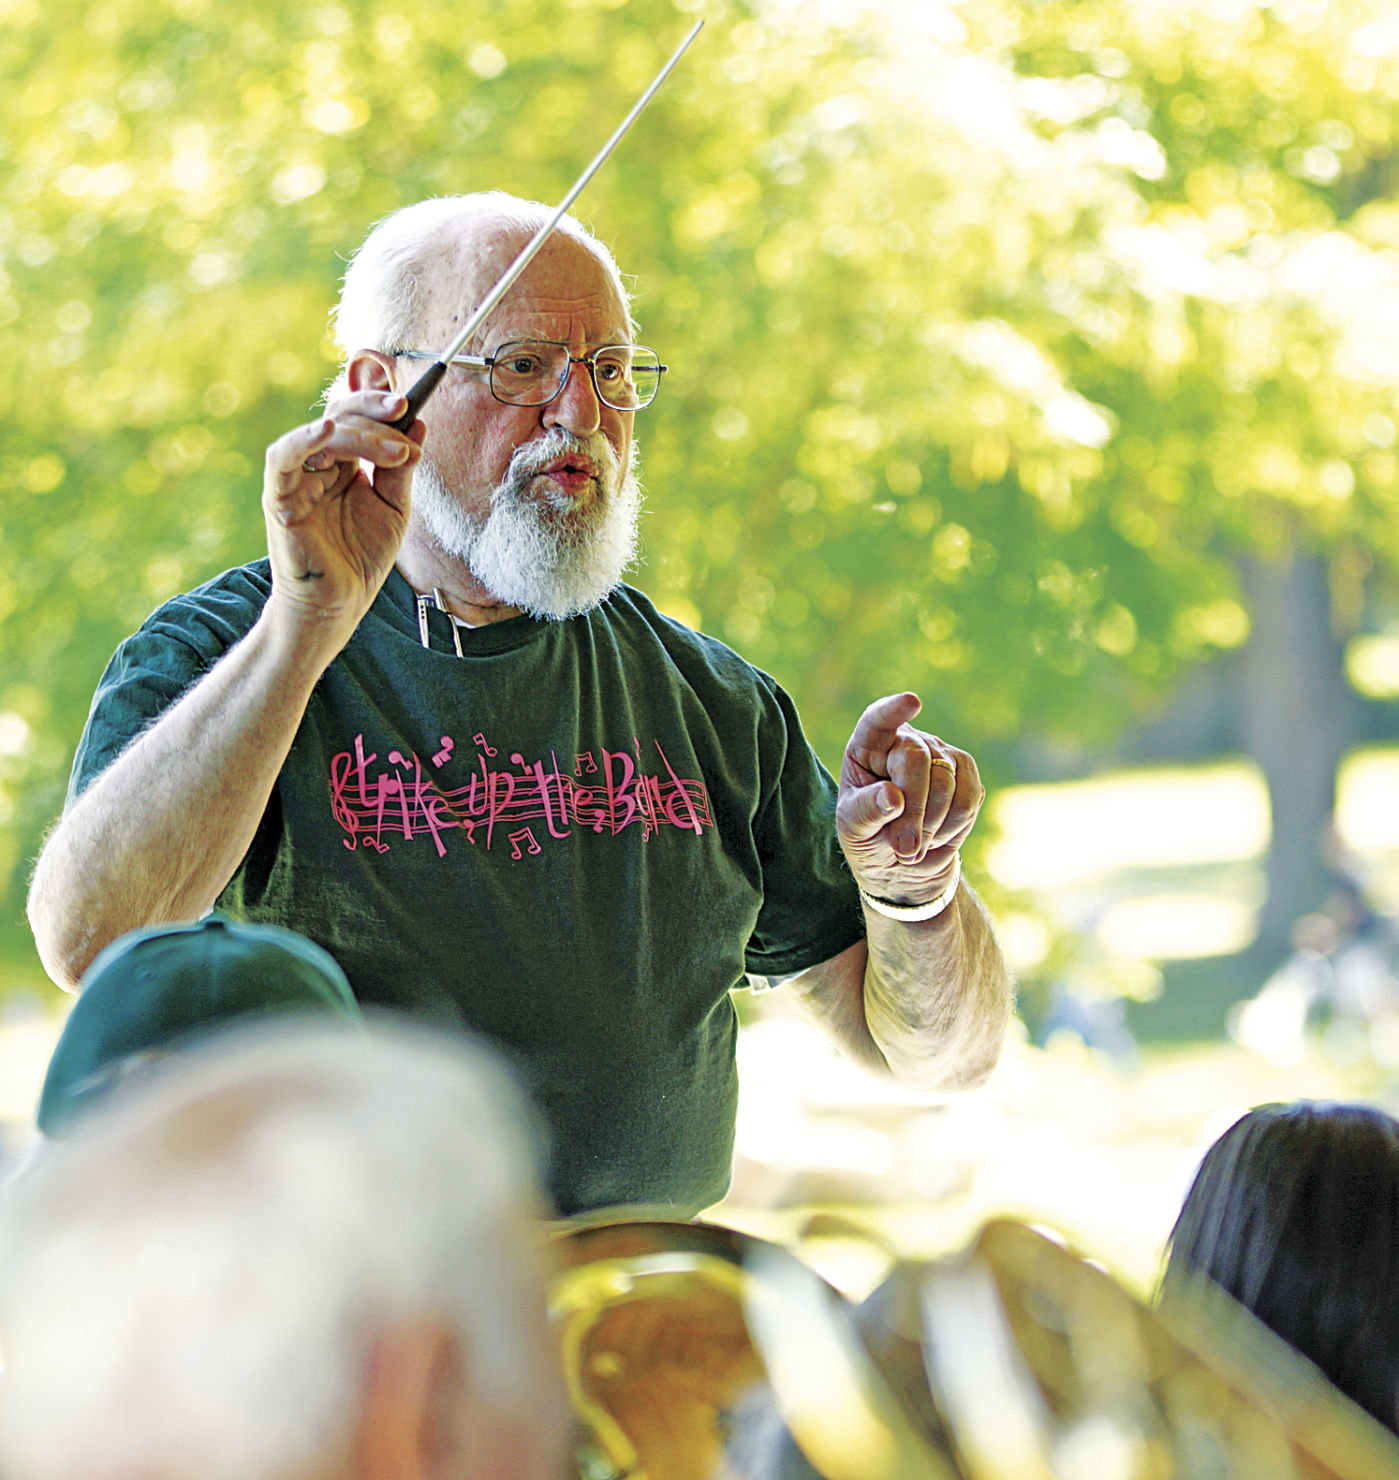 Karl Bach leads the Port Townsend Summer Band in a summer concert at Chetzemoka Park. Leader file photo